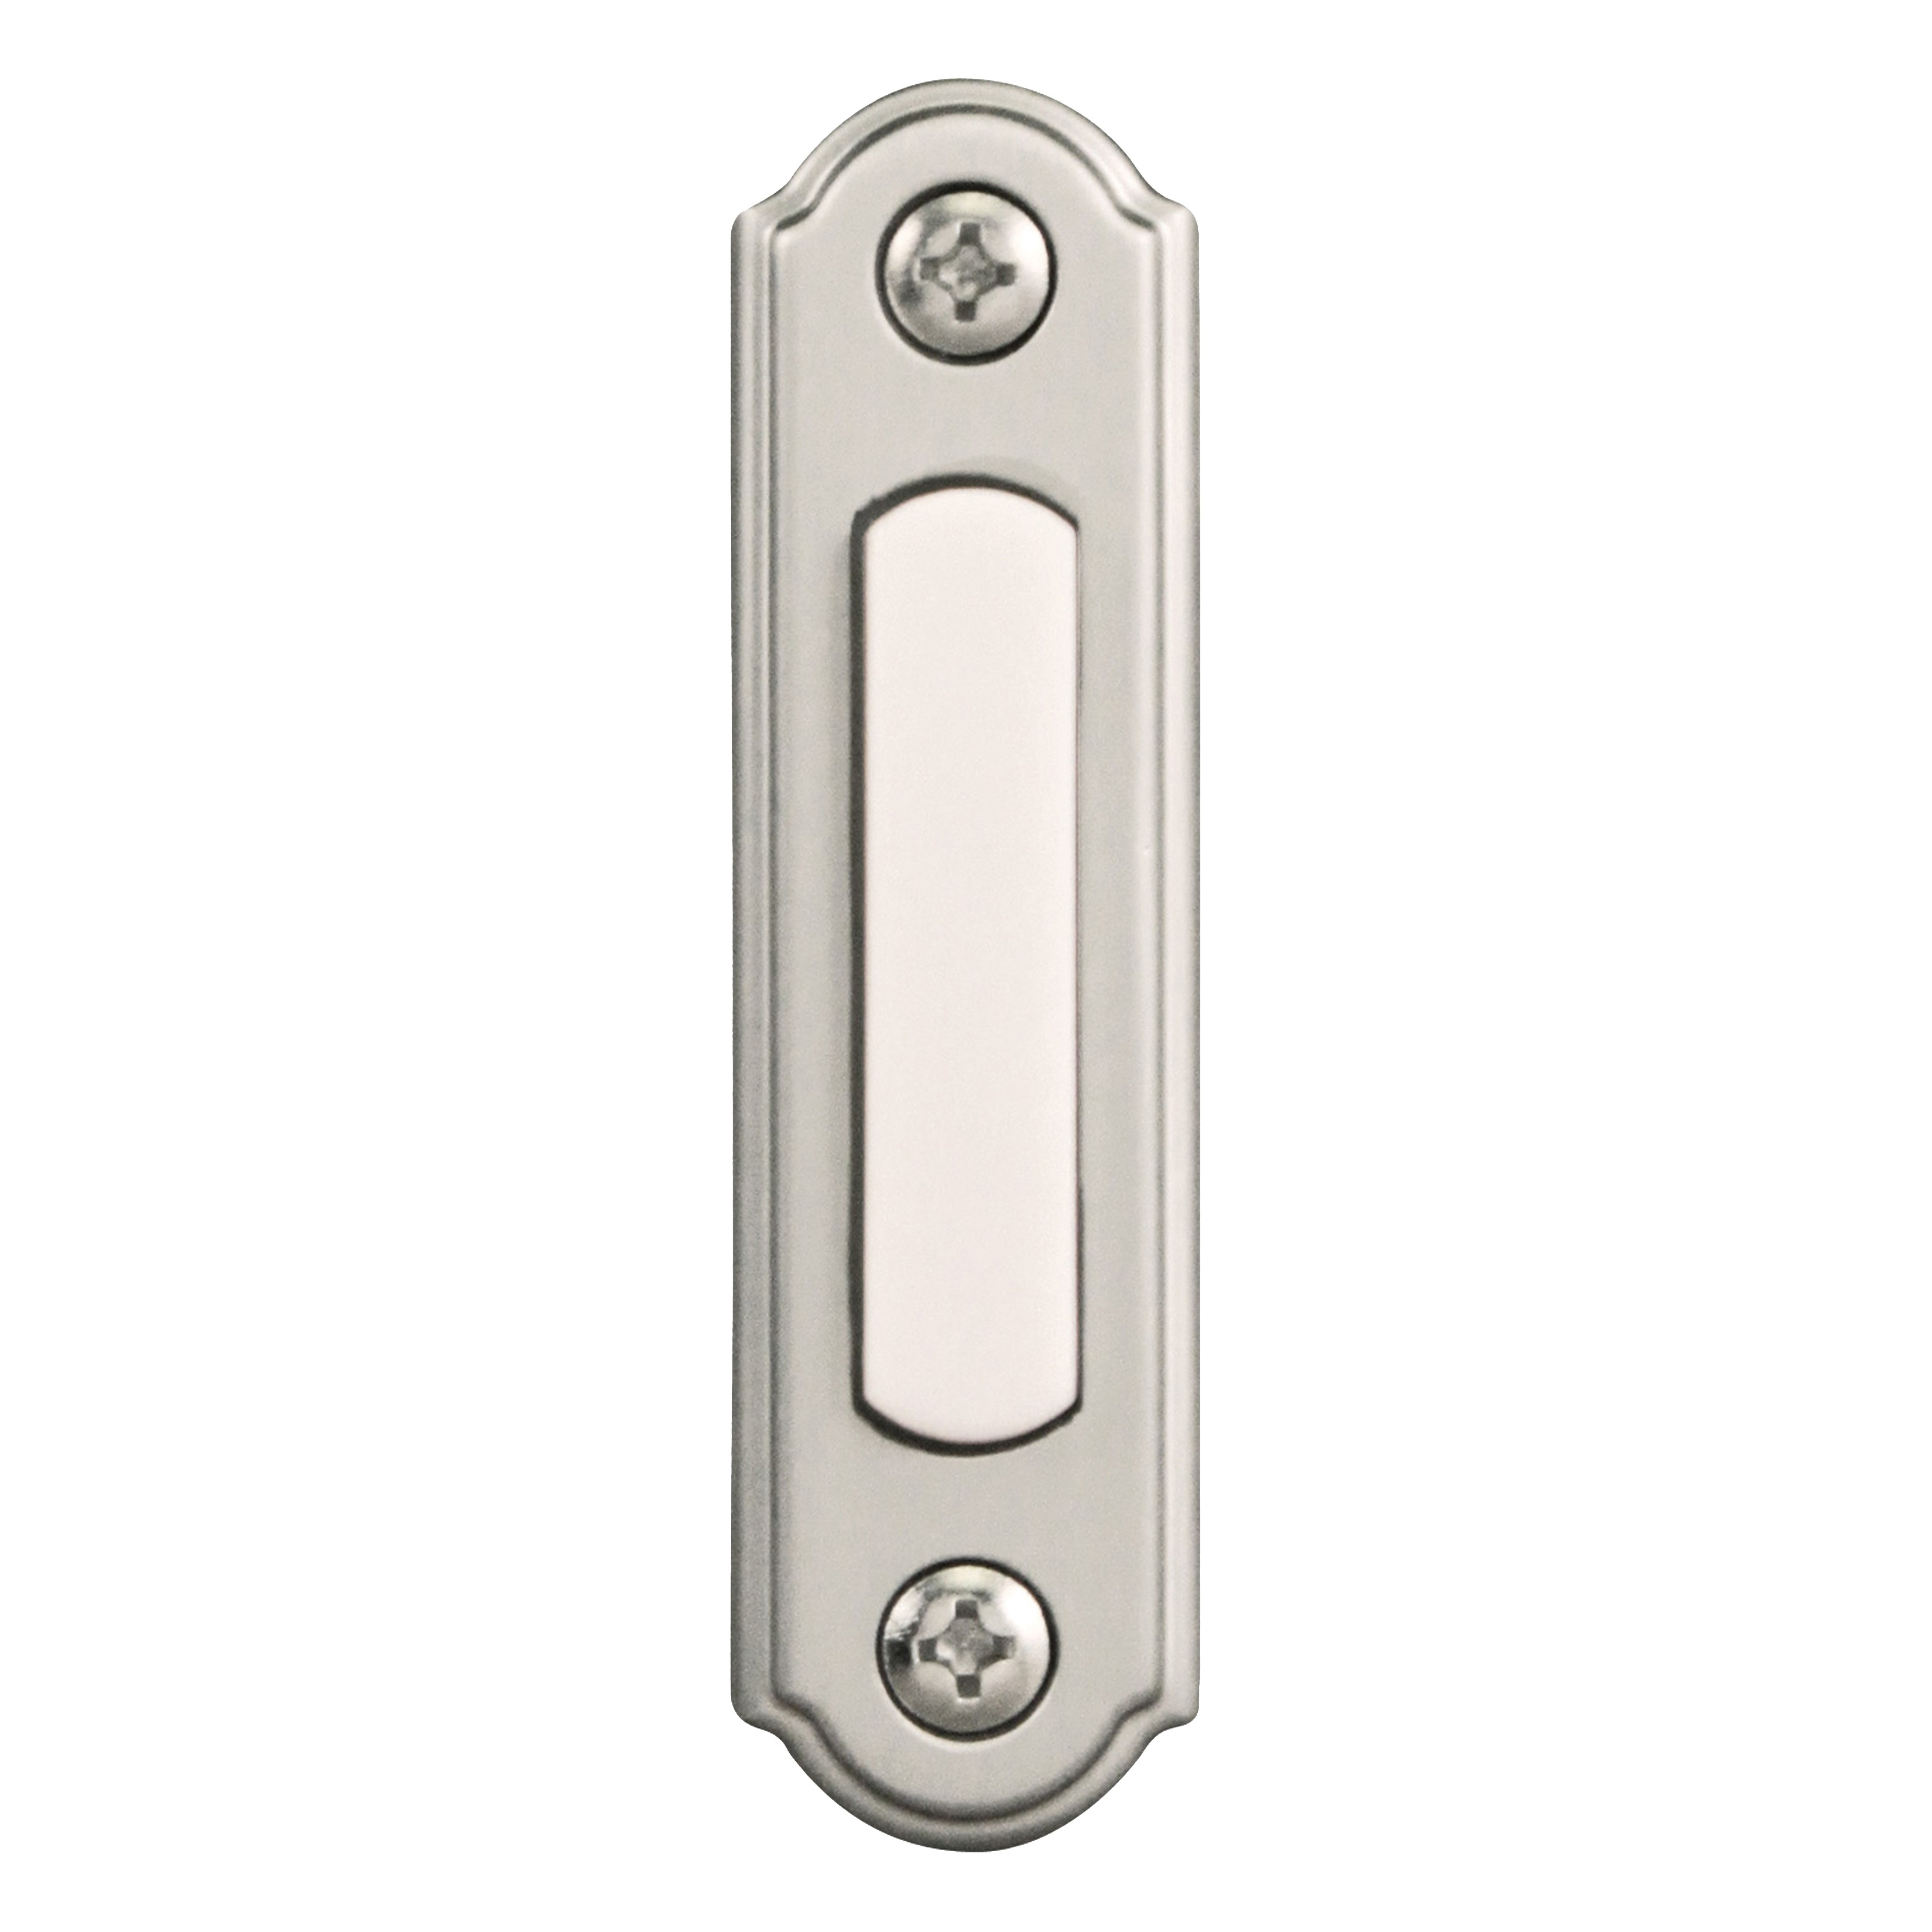 Picture of Heath Zenith SL-556-00 Pushbutton, Wired, Solid Metal, Lighted